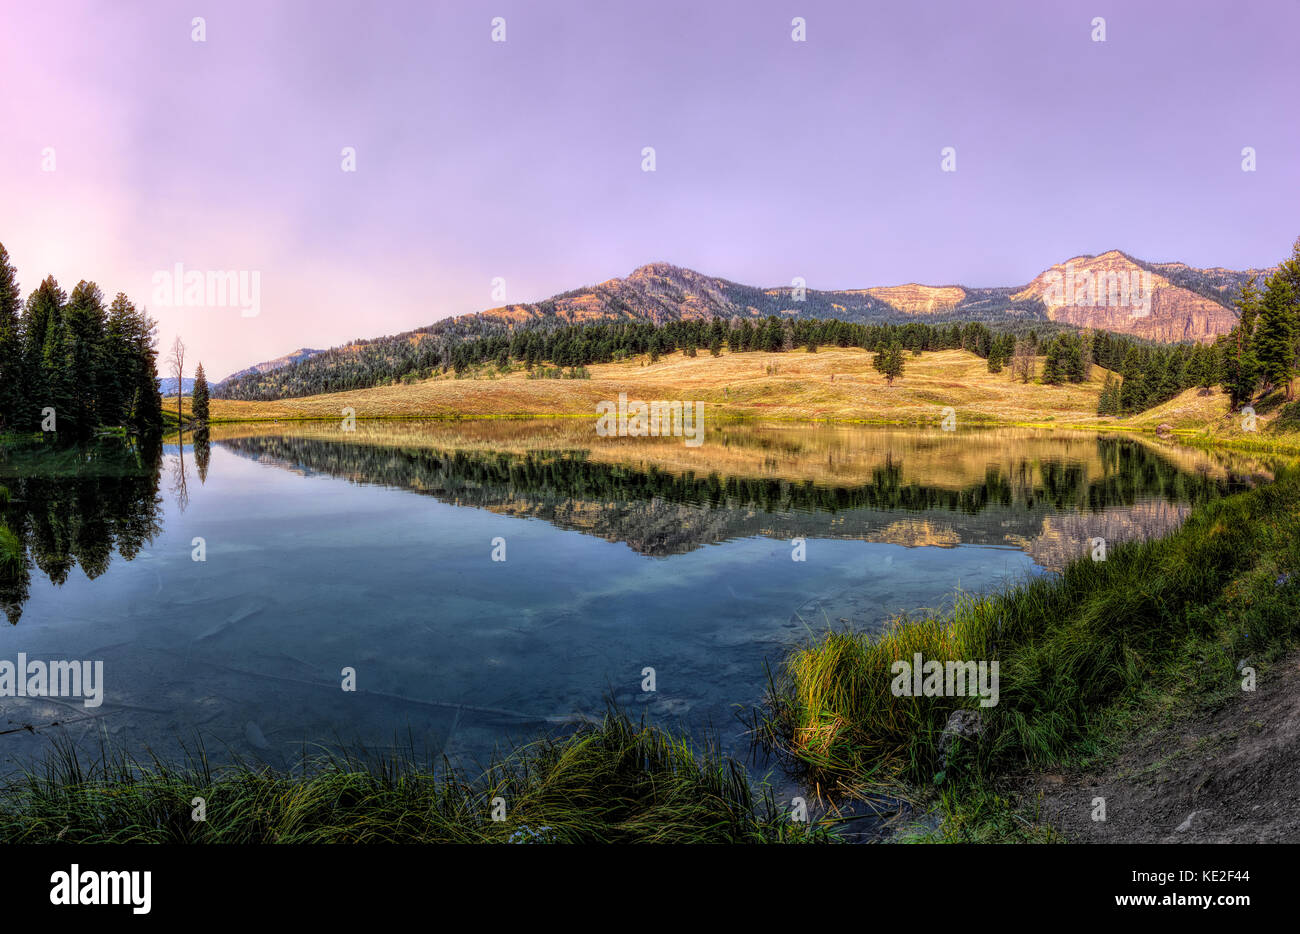 August 22, 2017 - Forellen See in Yellowstone National Park. Stockbild